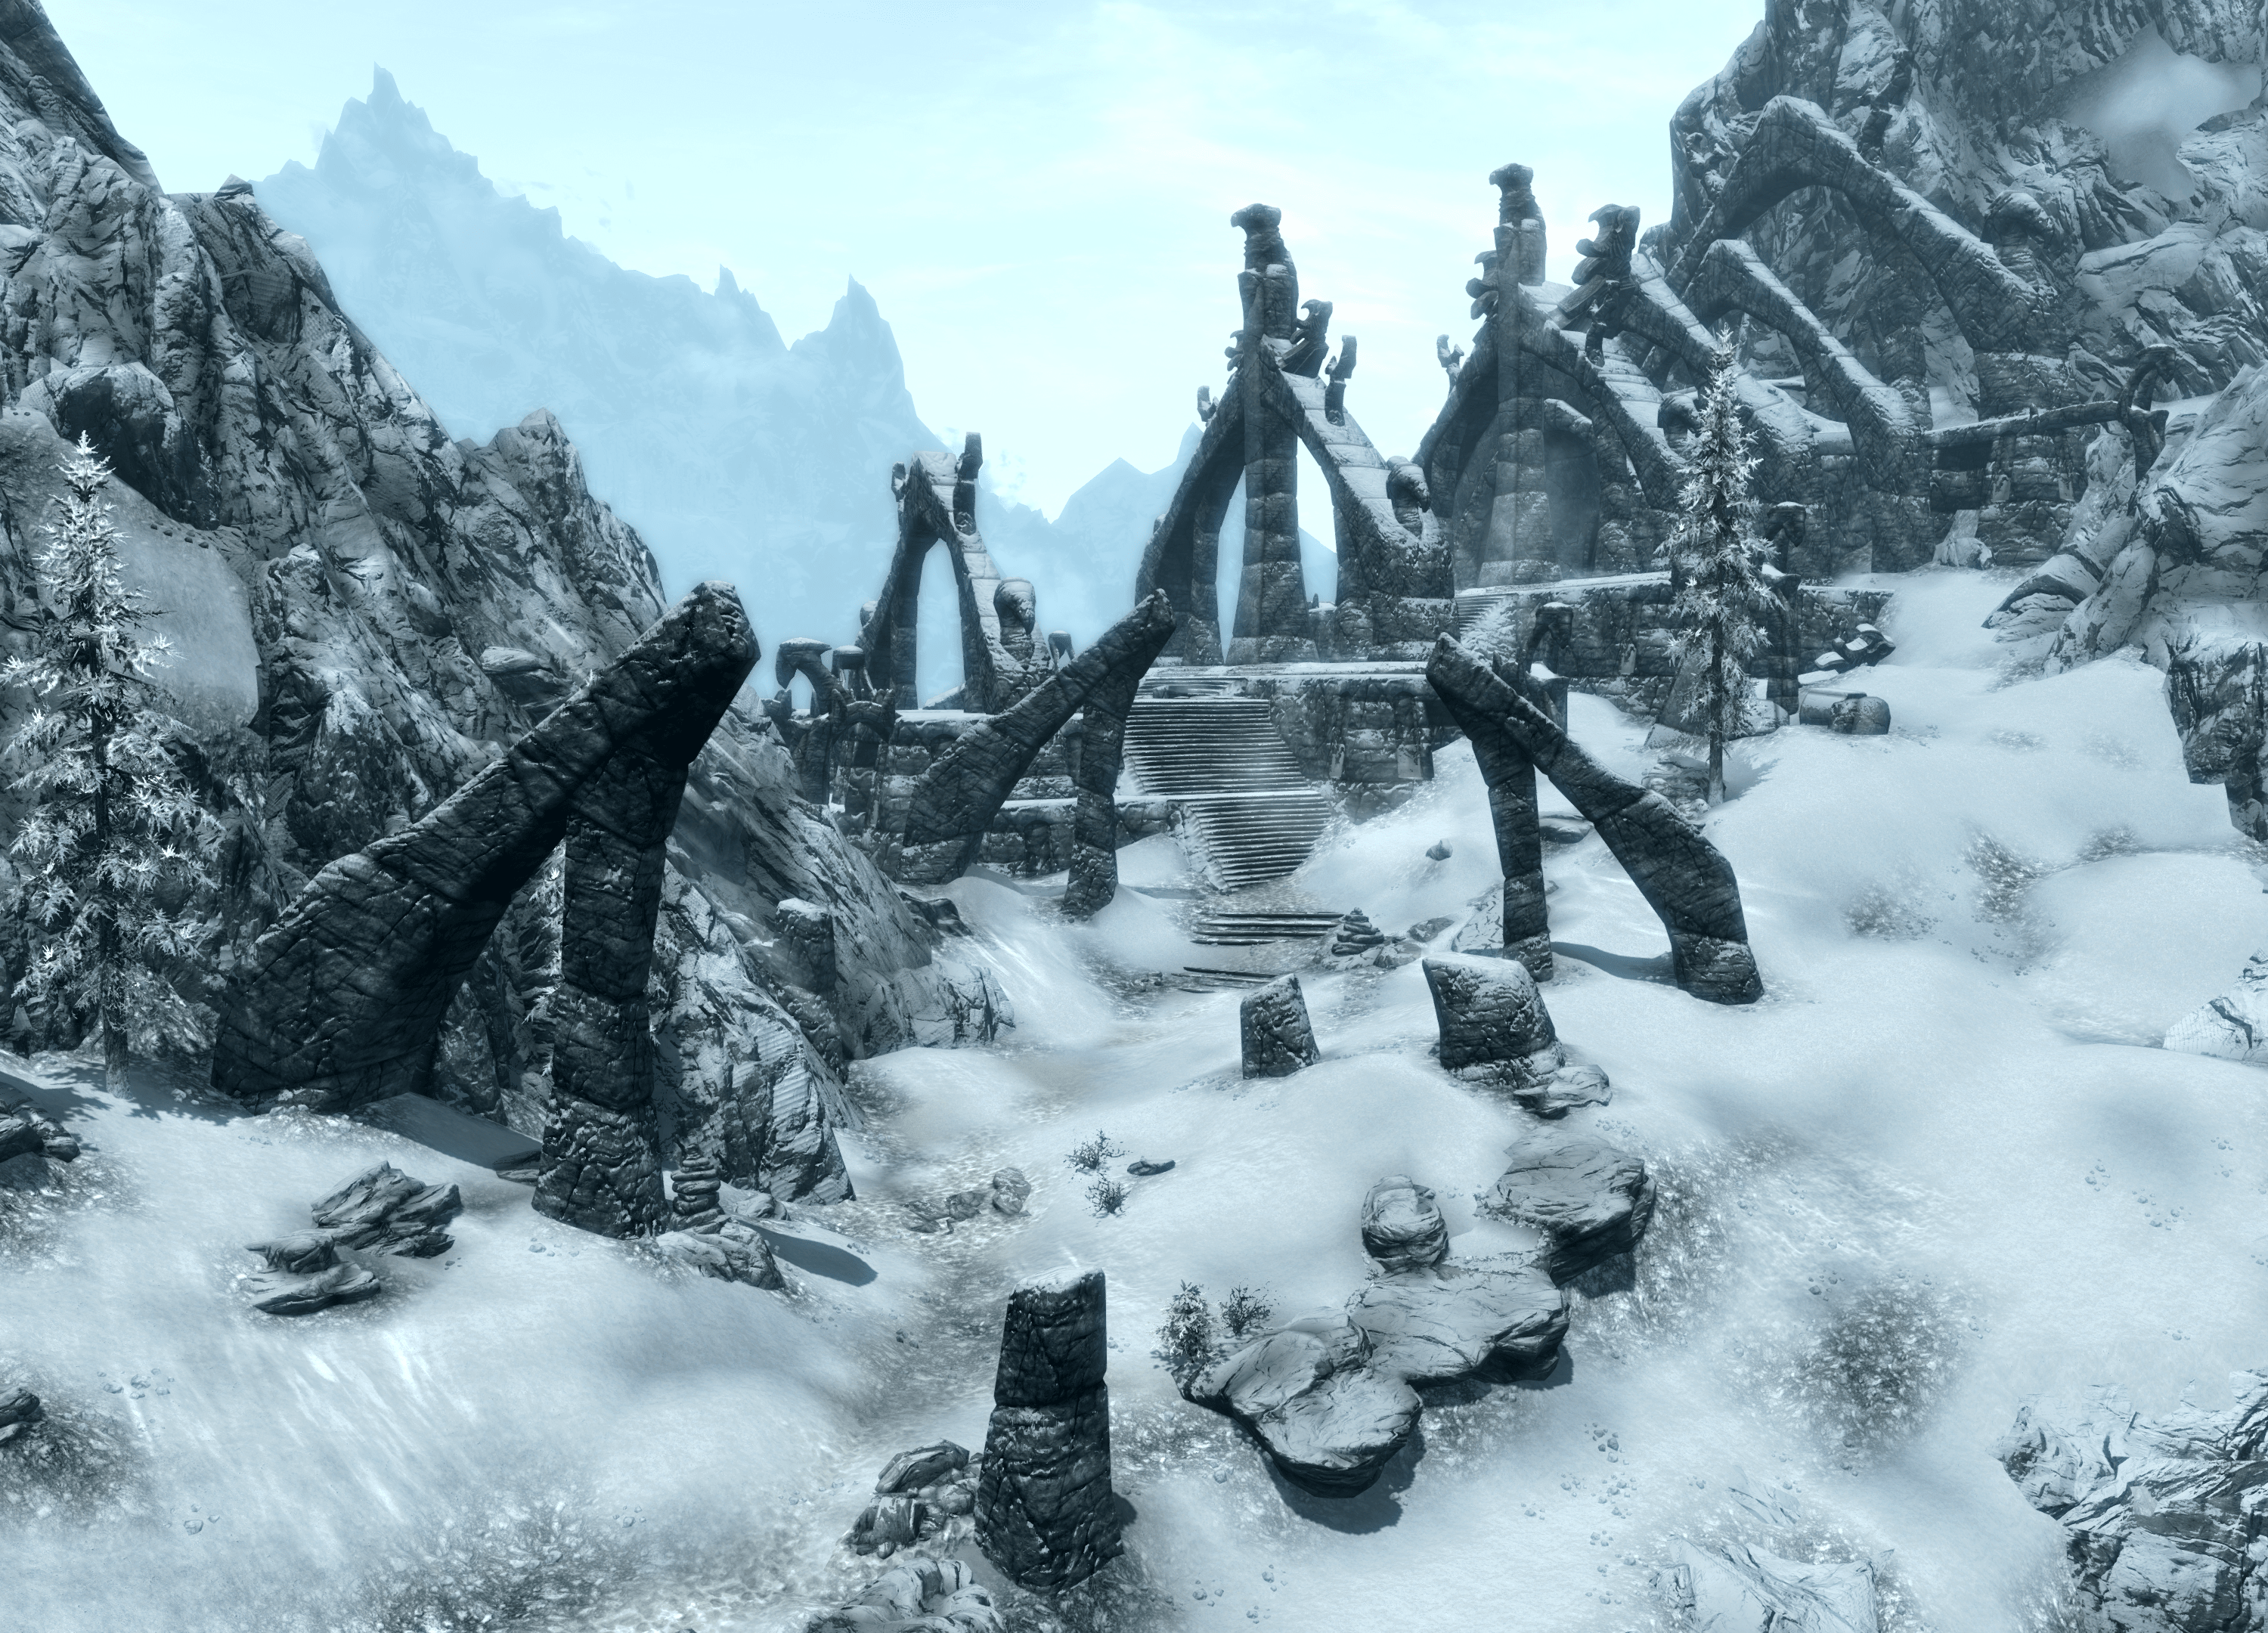 How to change your life in 10 steps, skyrim secret of bleak